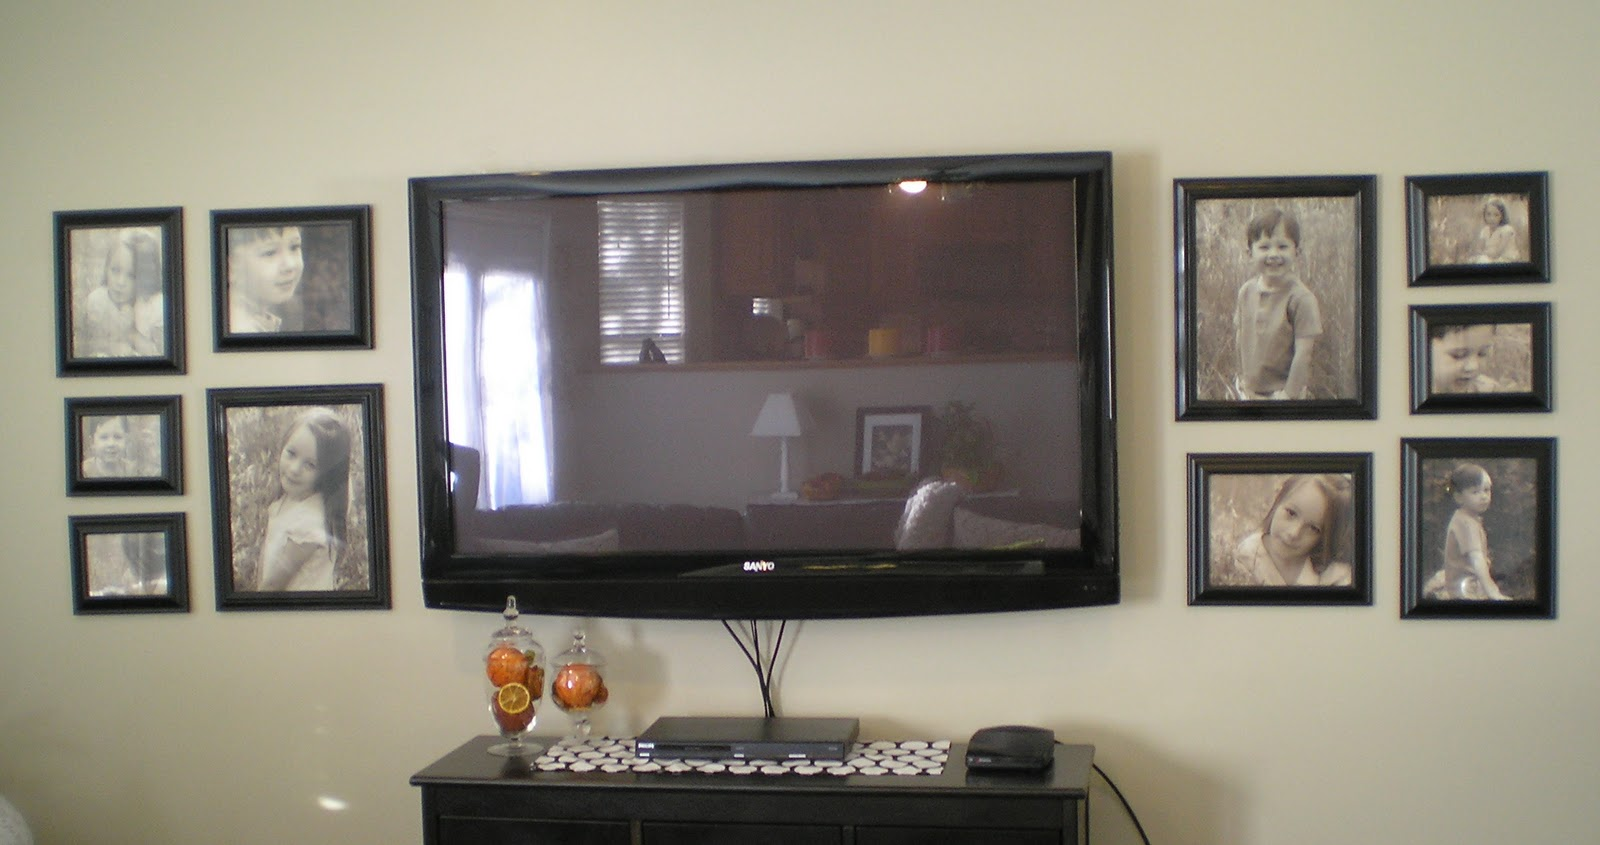 How to decorate around a flat screen tv apps directories